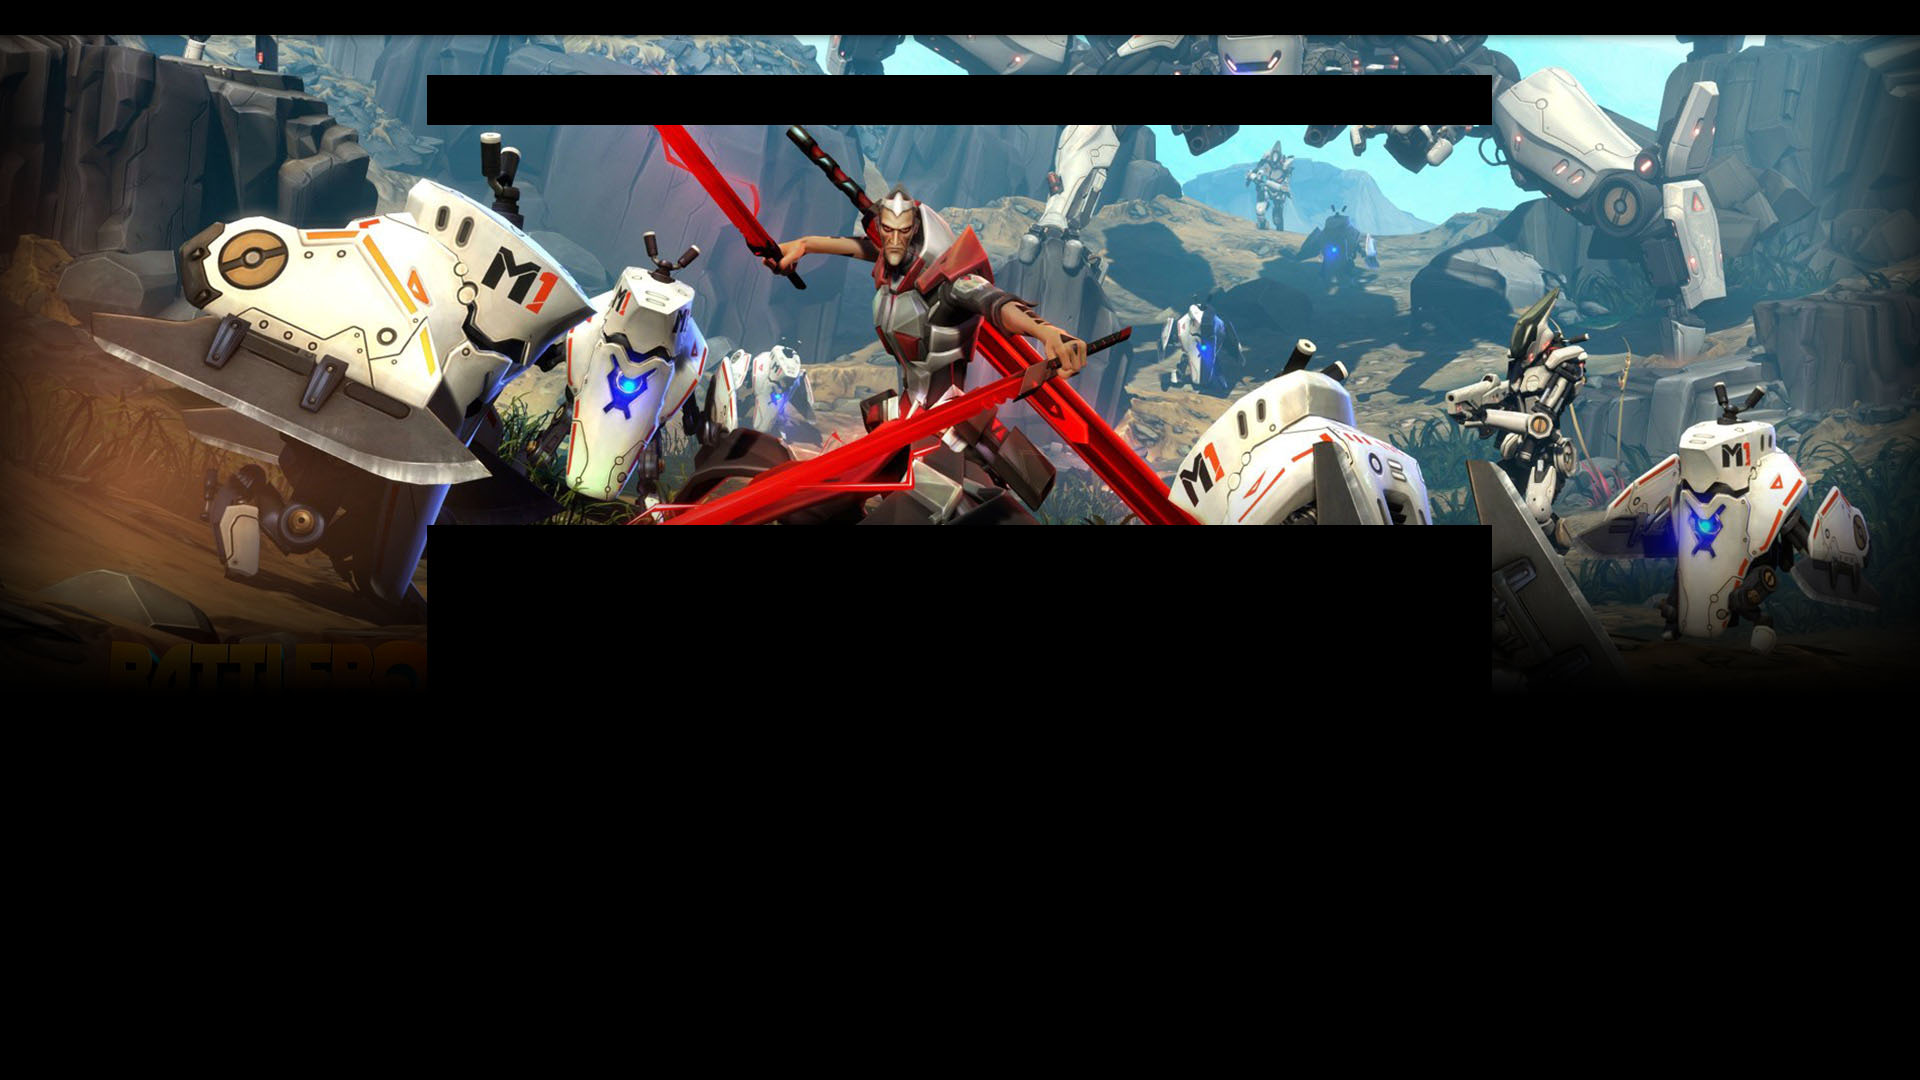 Battleborn video game